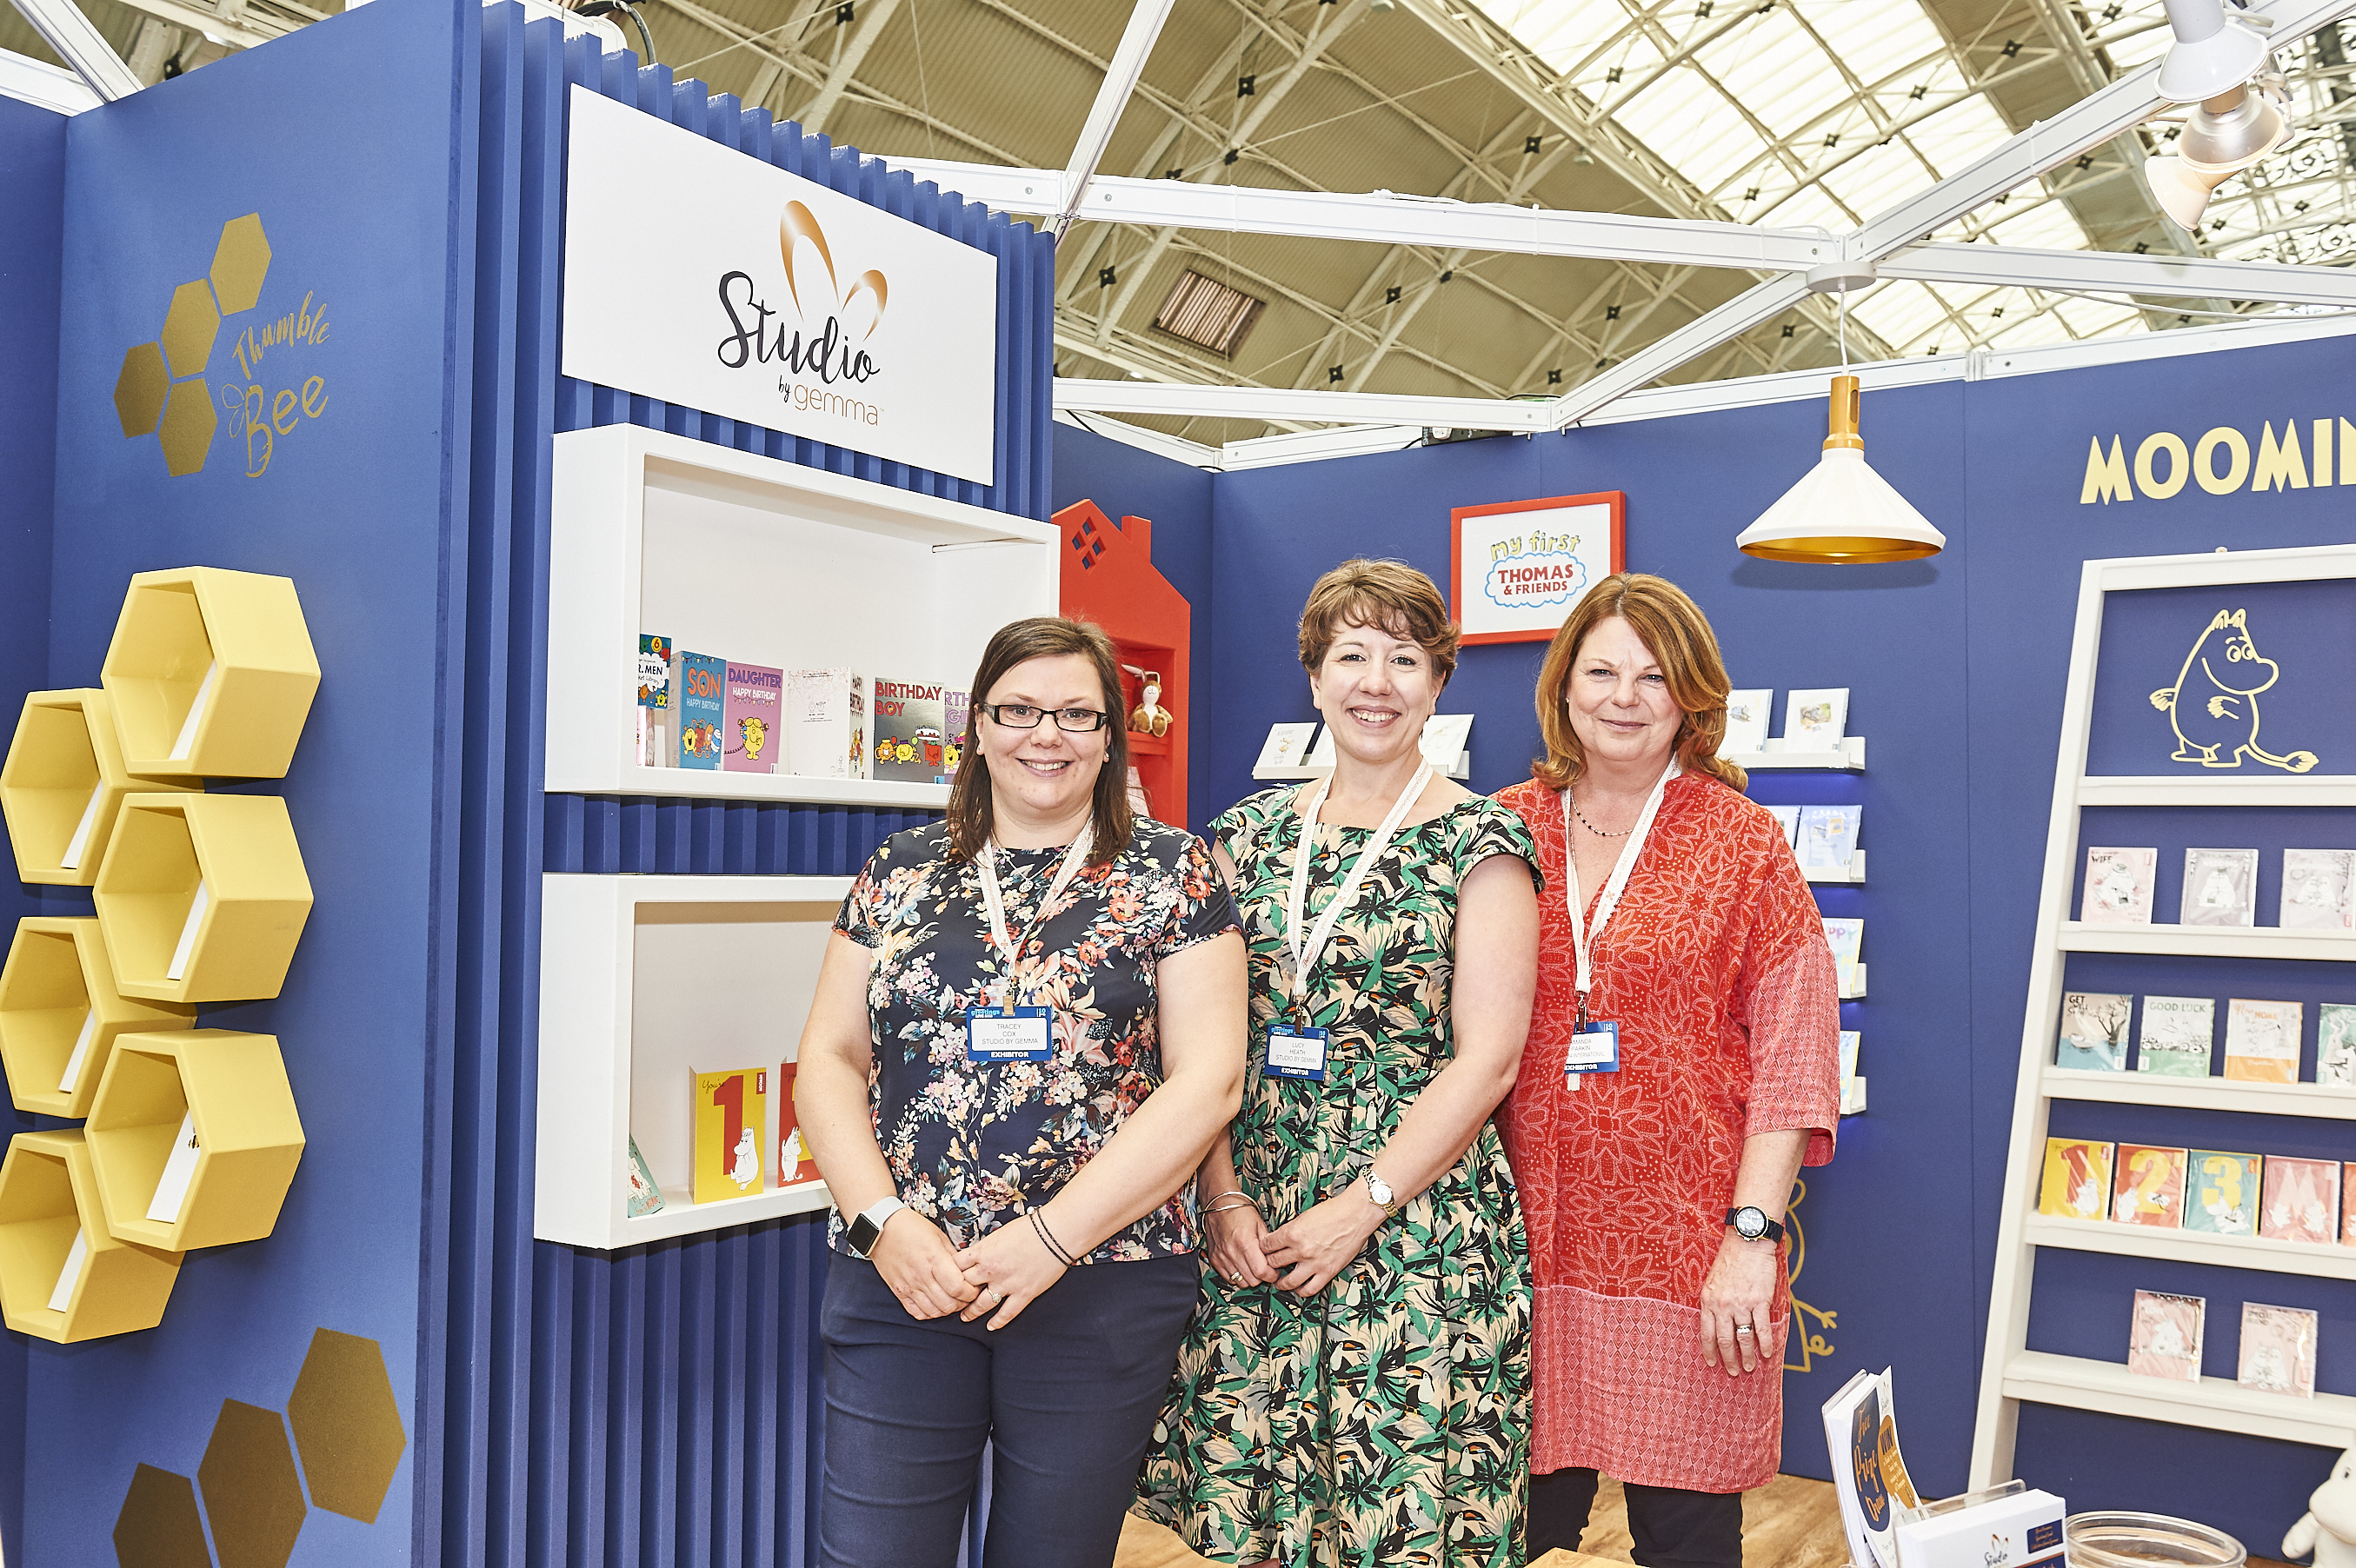 Above: Gemma's managing director Amanda Parkin (right) on the company's Studio by Gemma stand at last year's PG Live.